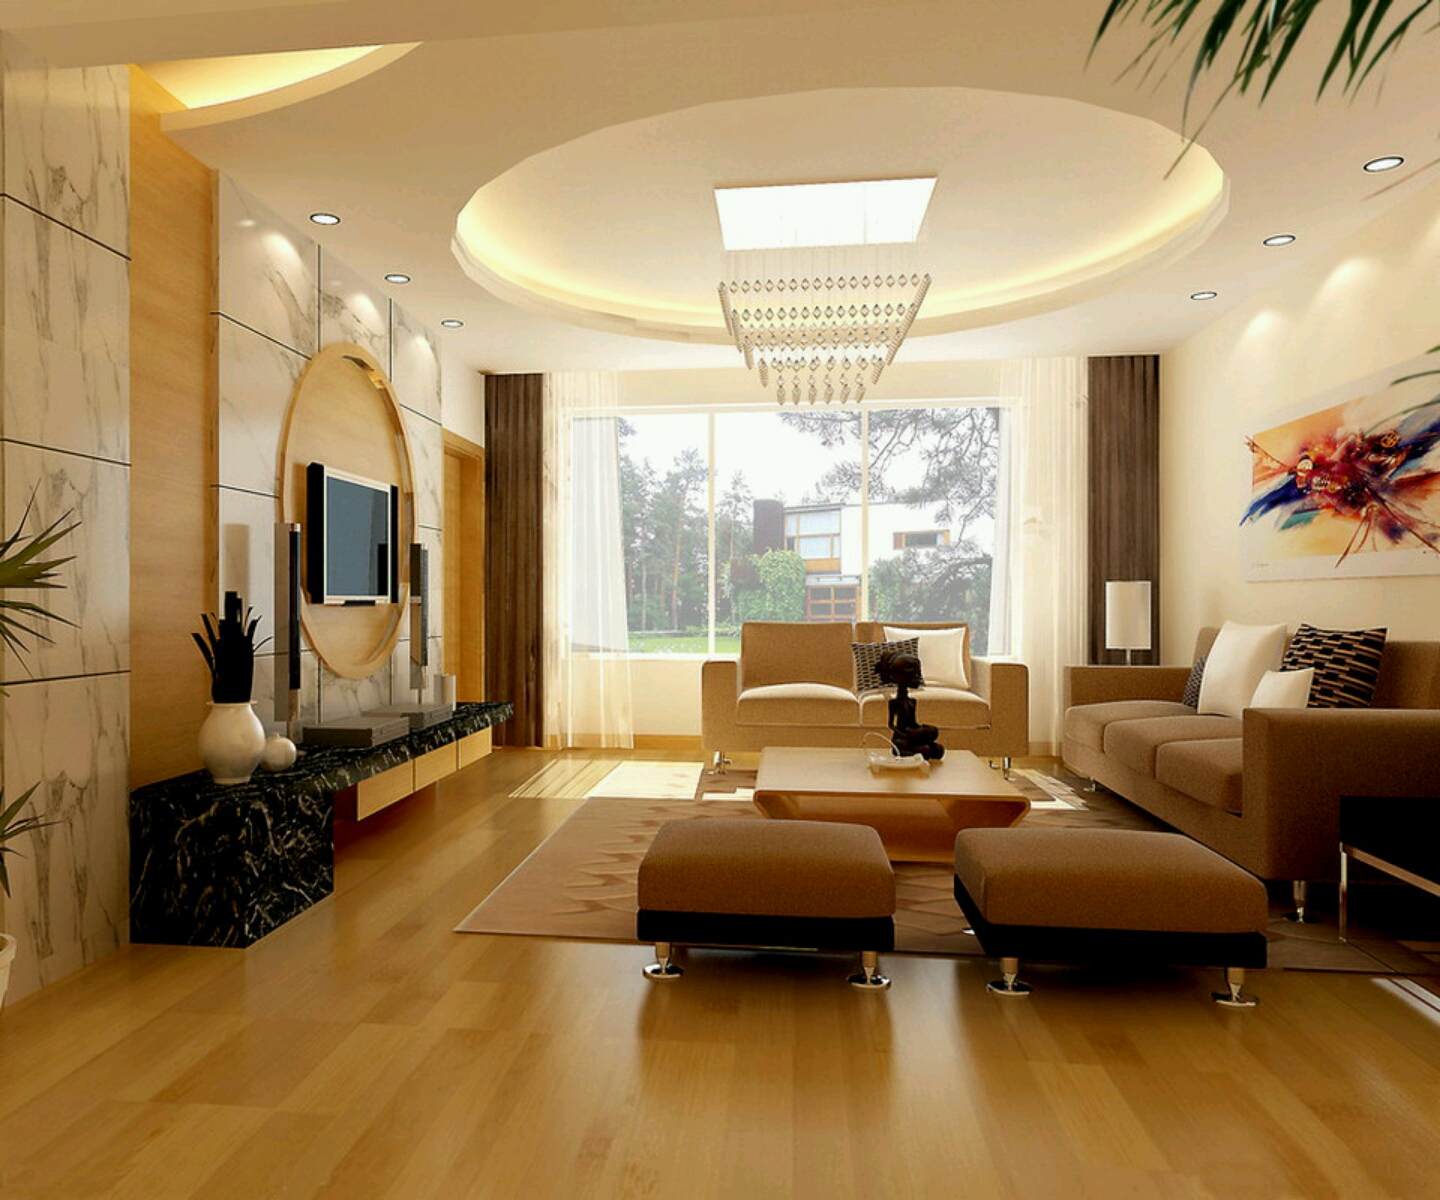 Interior Design Home Decorating Ideas: Modern Interior Decoration Living Rooms Ceiling Designs